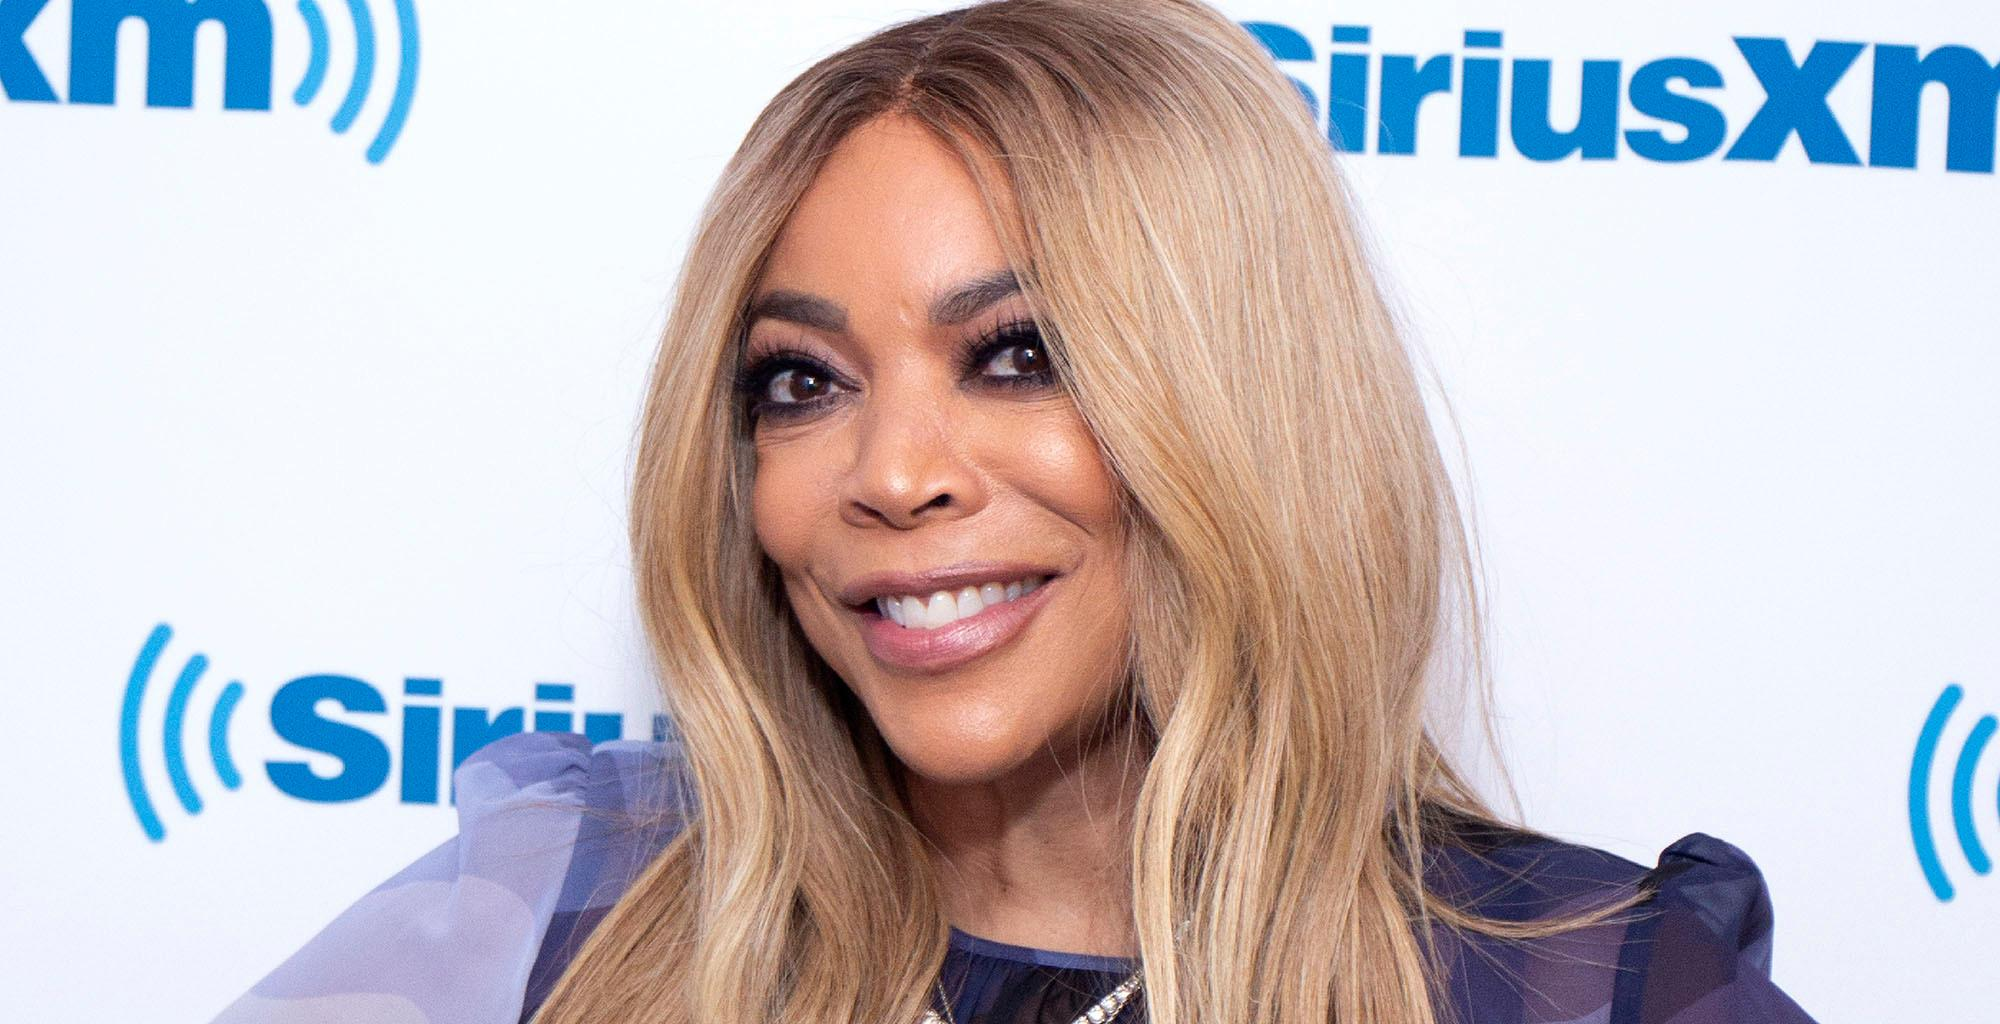 Wendy Williams' Recent Behind The Scenes Photo Shoot Have Fans Exclaiming: 'She's Taking It To Another Level!'